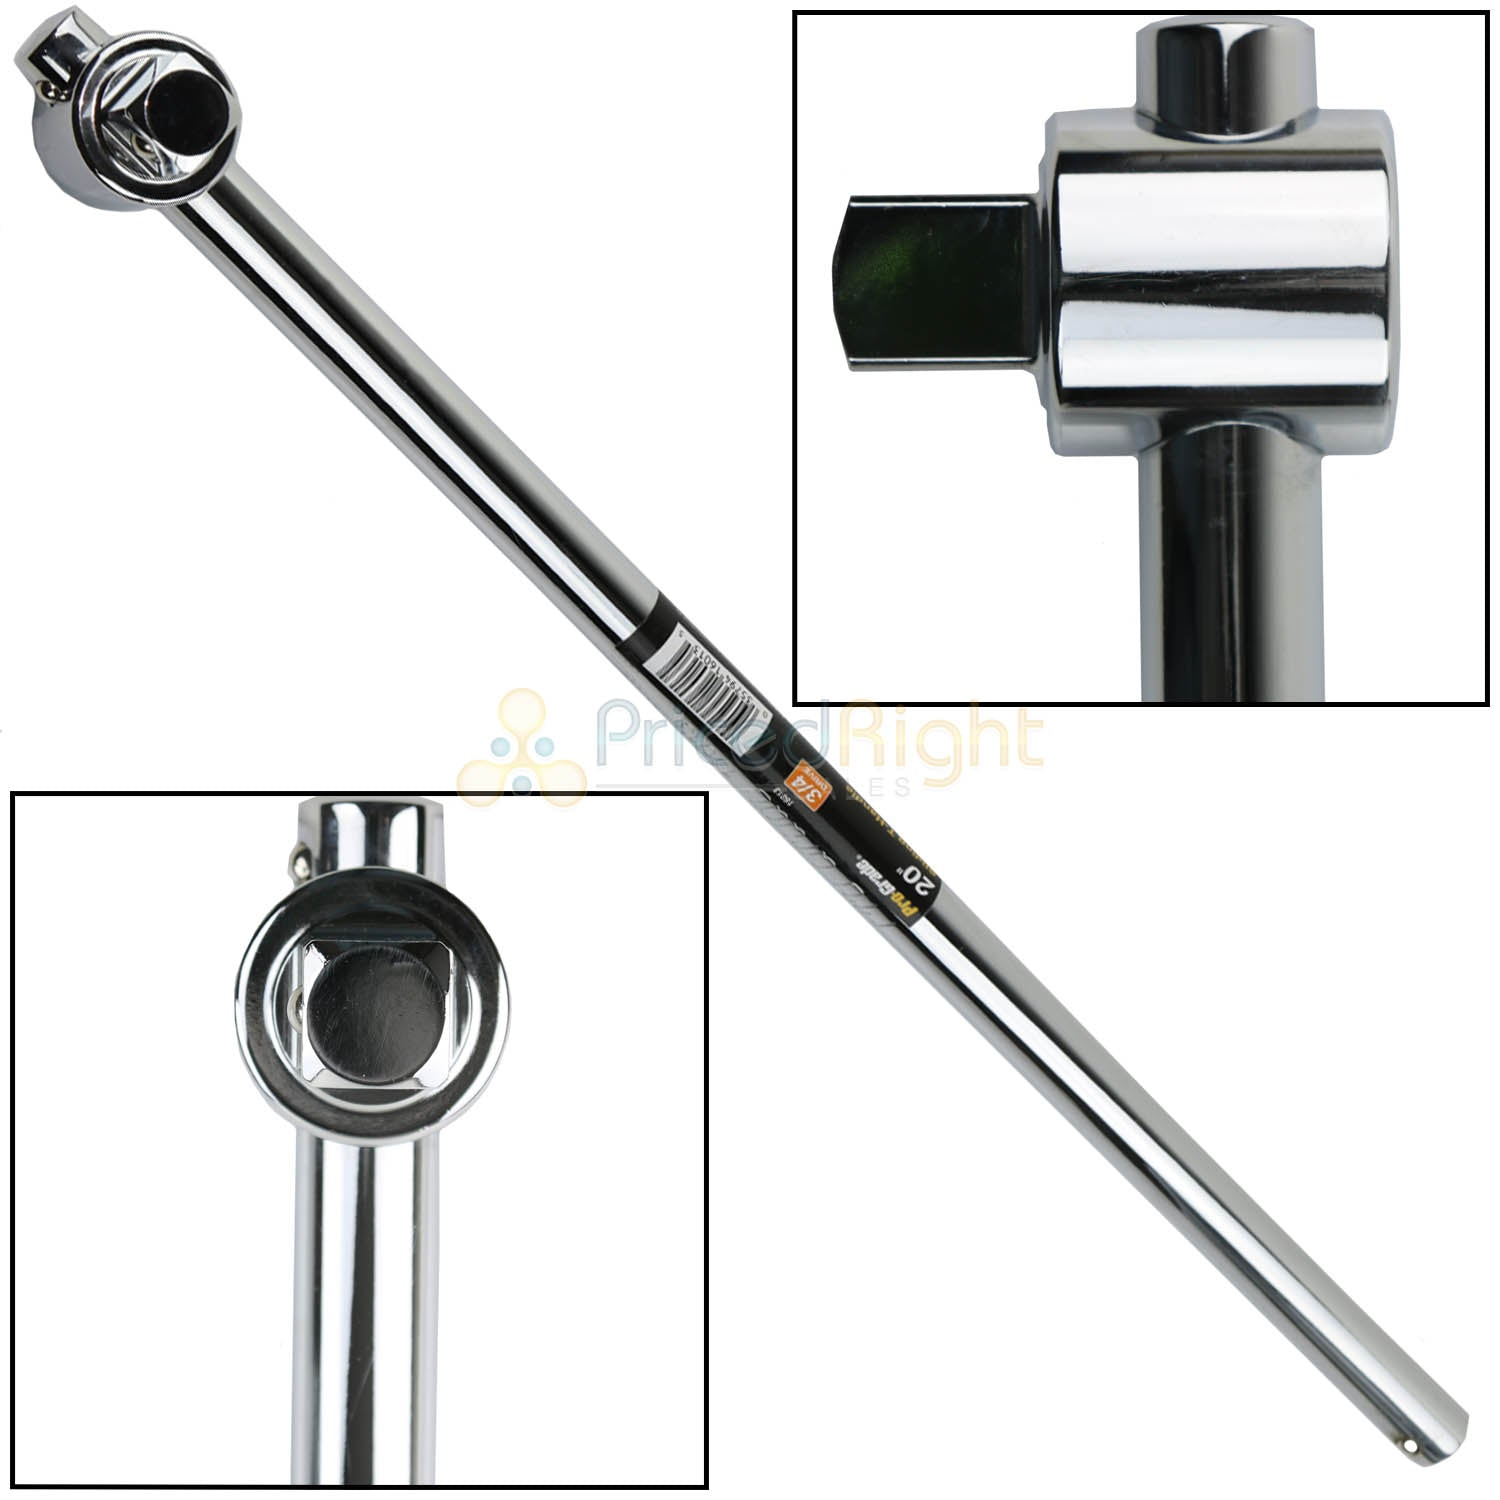 "Pro Grade 20"" 3/4 Drive Sliding T-Handle Socket Wrench Breaker Bar Heavy Duty"